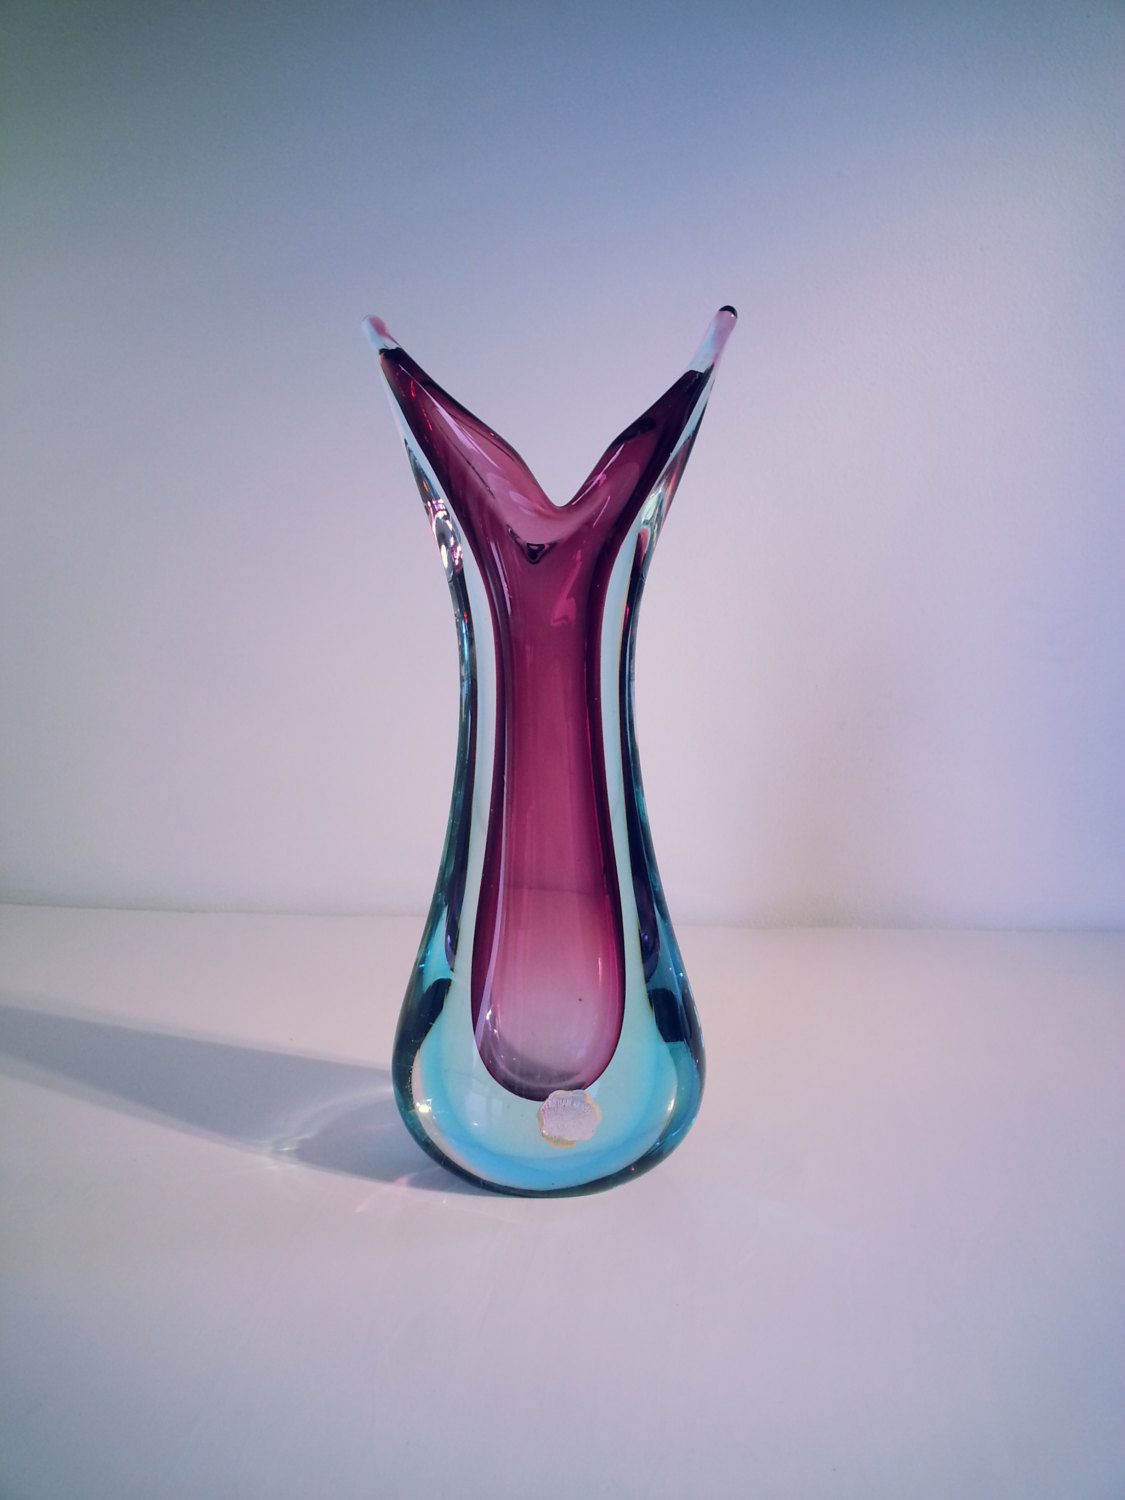 Wide Mouth Glass Vases Of Murano sommerso Genuine Venetian Glass 1950s 1960s Purple Blue Pertaining to Murano sommerso Genuine Venetian Glass 1950s 1960s Purple Blue Glass Vase Pulled Design Vase Made In Italy by Fcollectables On Etsy